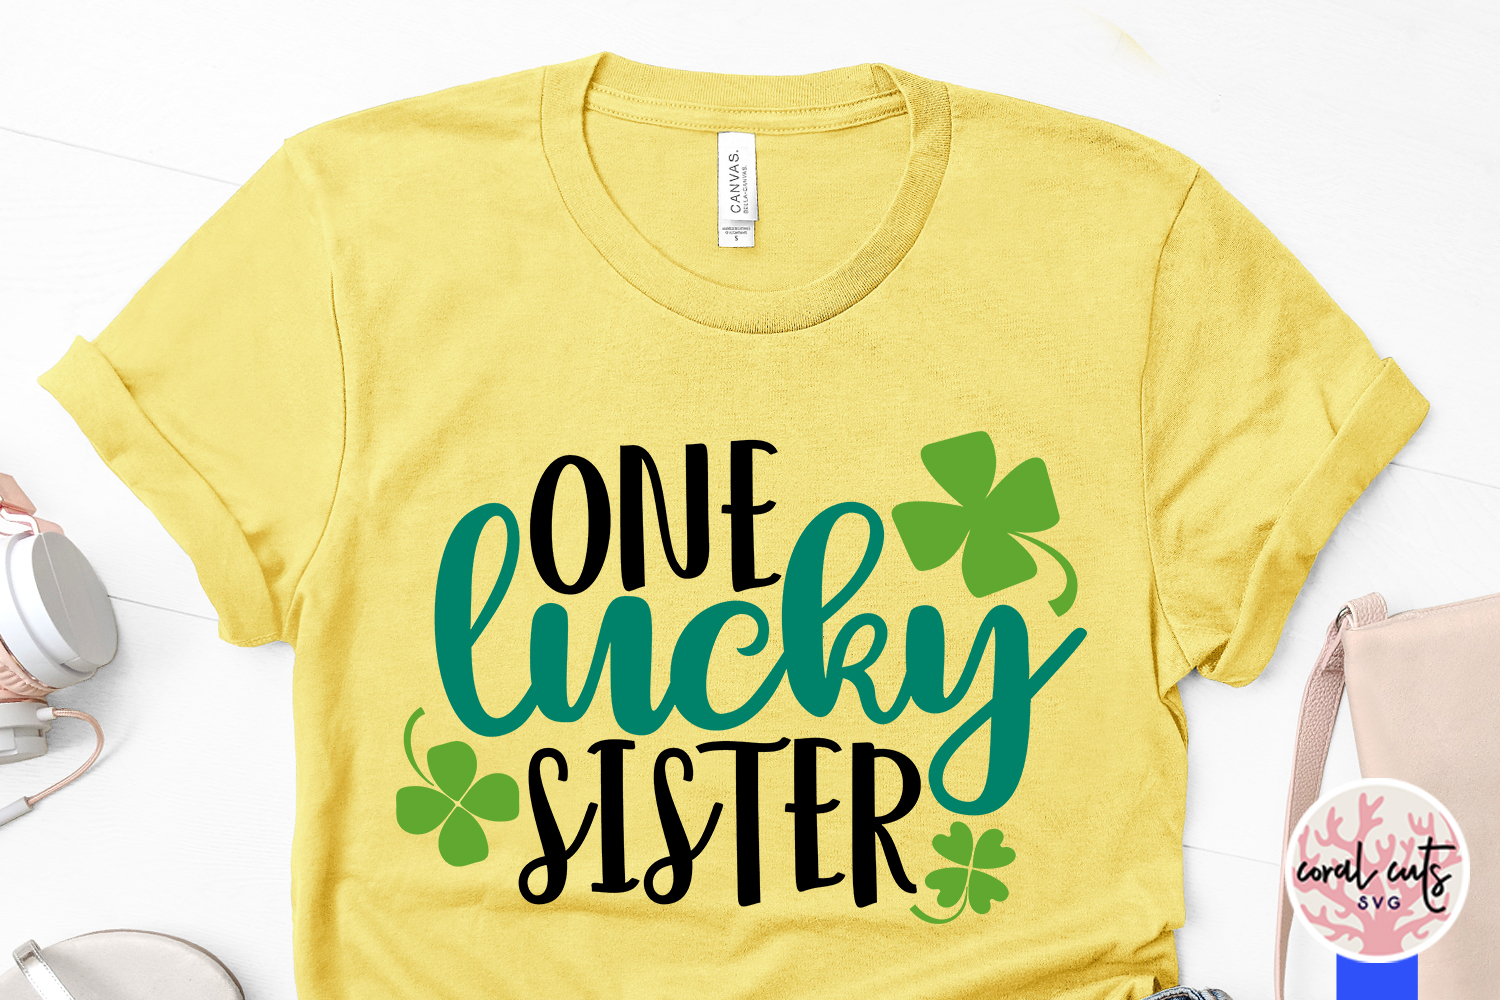 One lucky sister - St. Patrick's Day SVG EPS DXF PNG example image 3